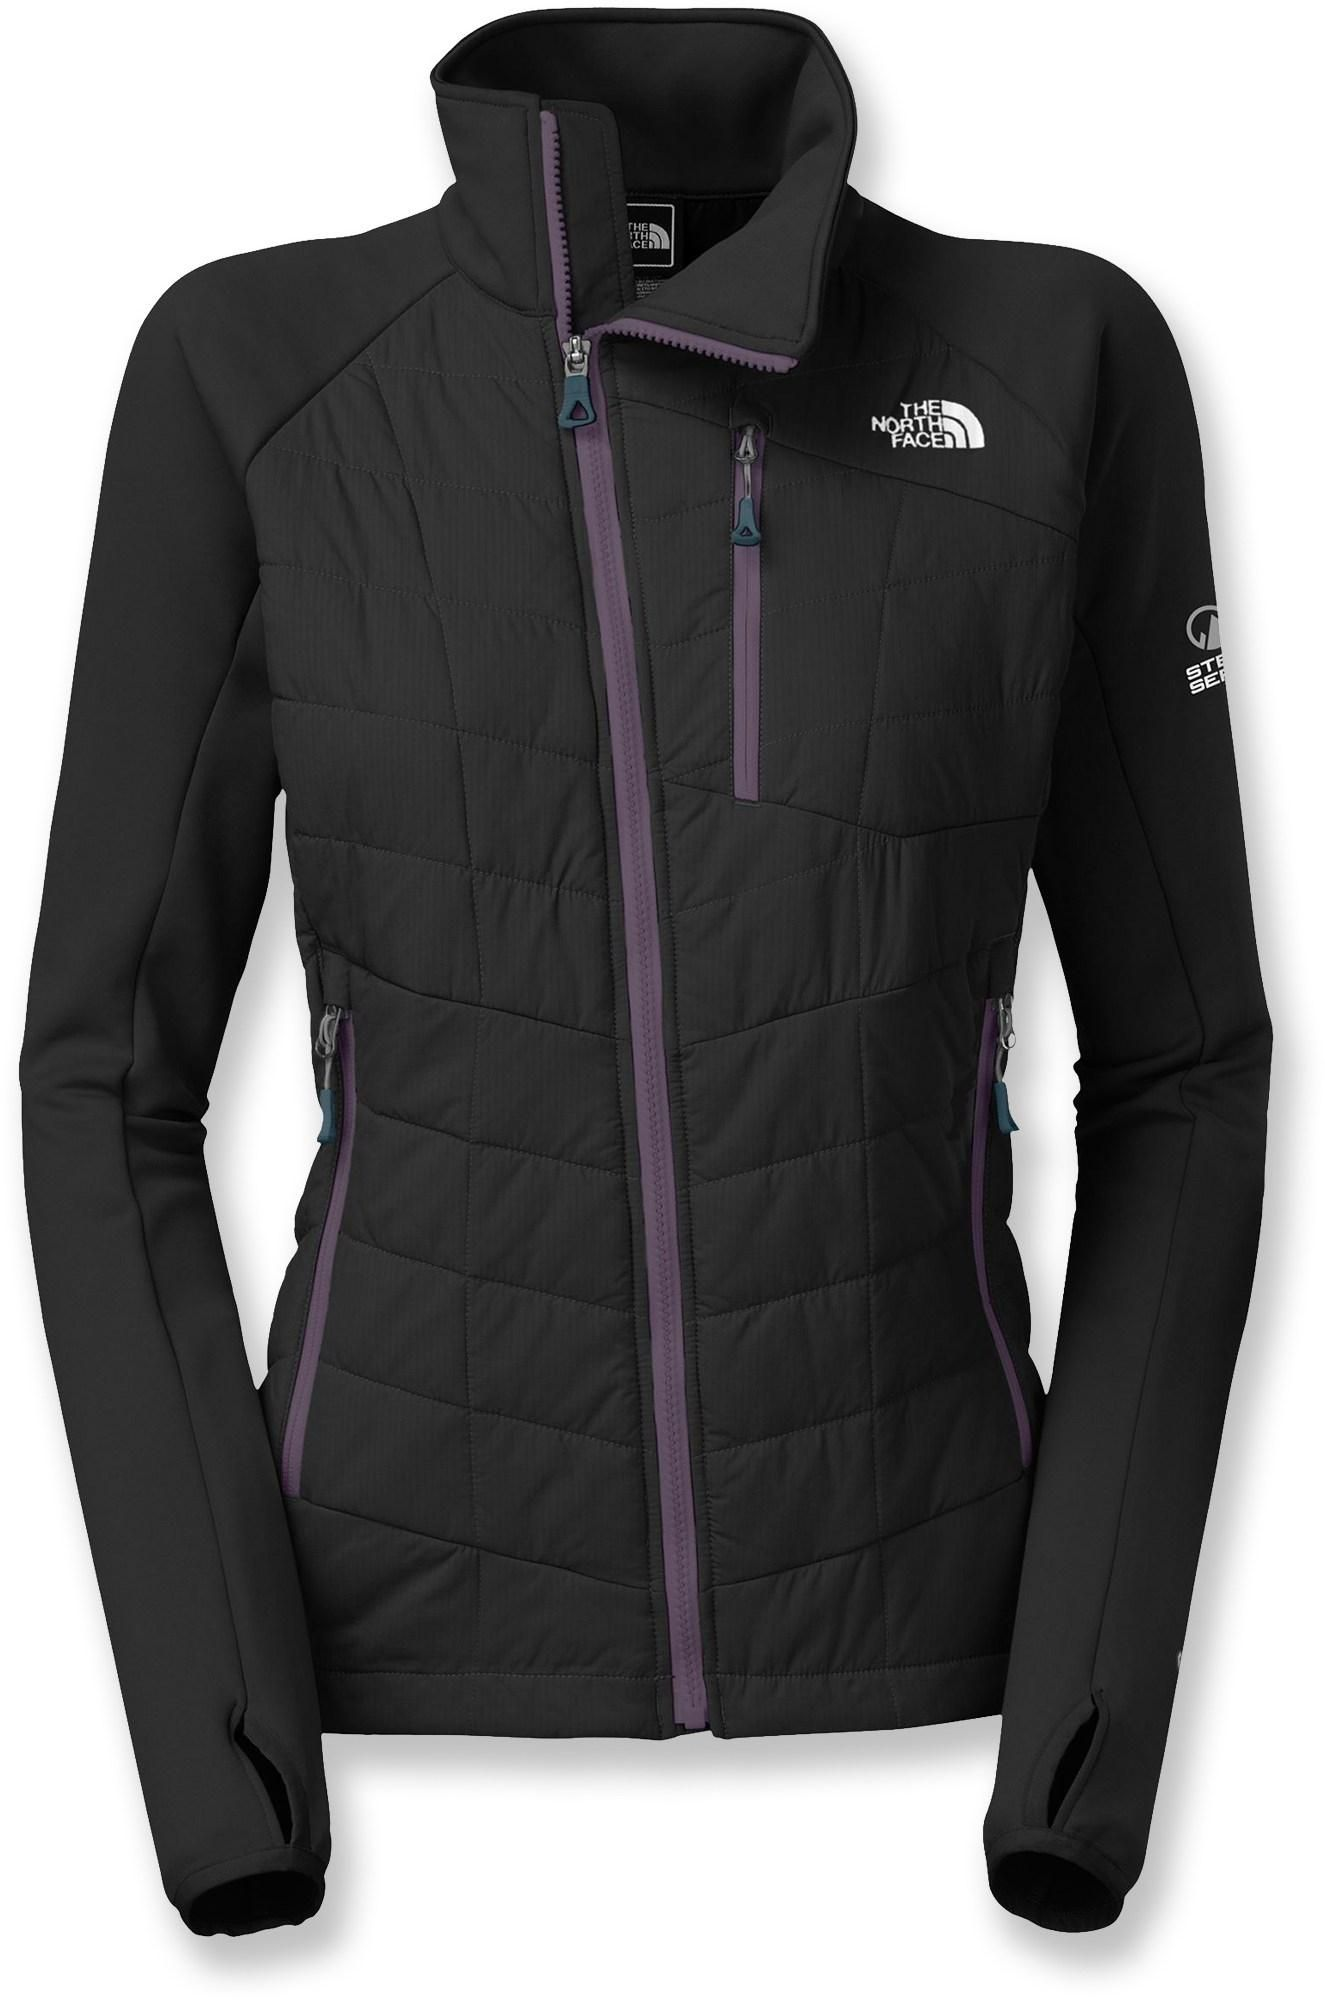 The North Face Pemby Hybrid Insulated Jacket Women S Rei Co Op Insulated Jacket Women Jackets For Women Fashion [ 2000 x 1325 Pixel ]